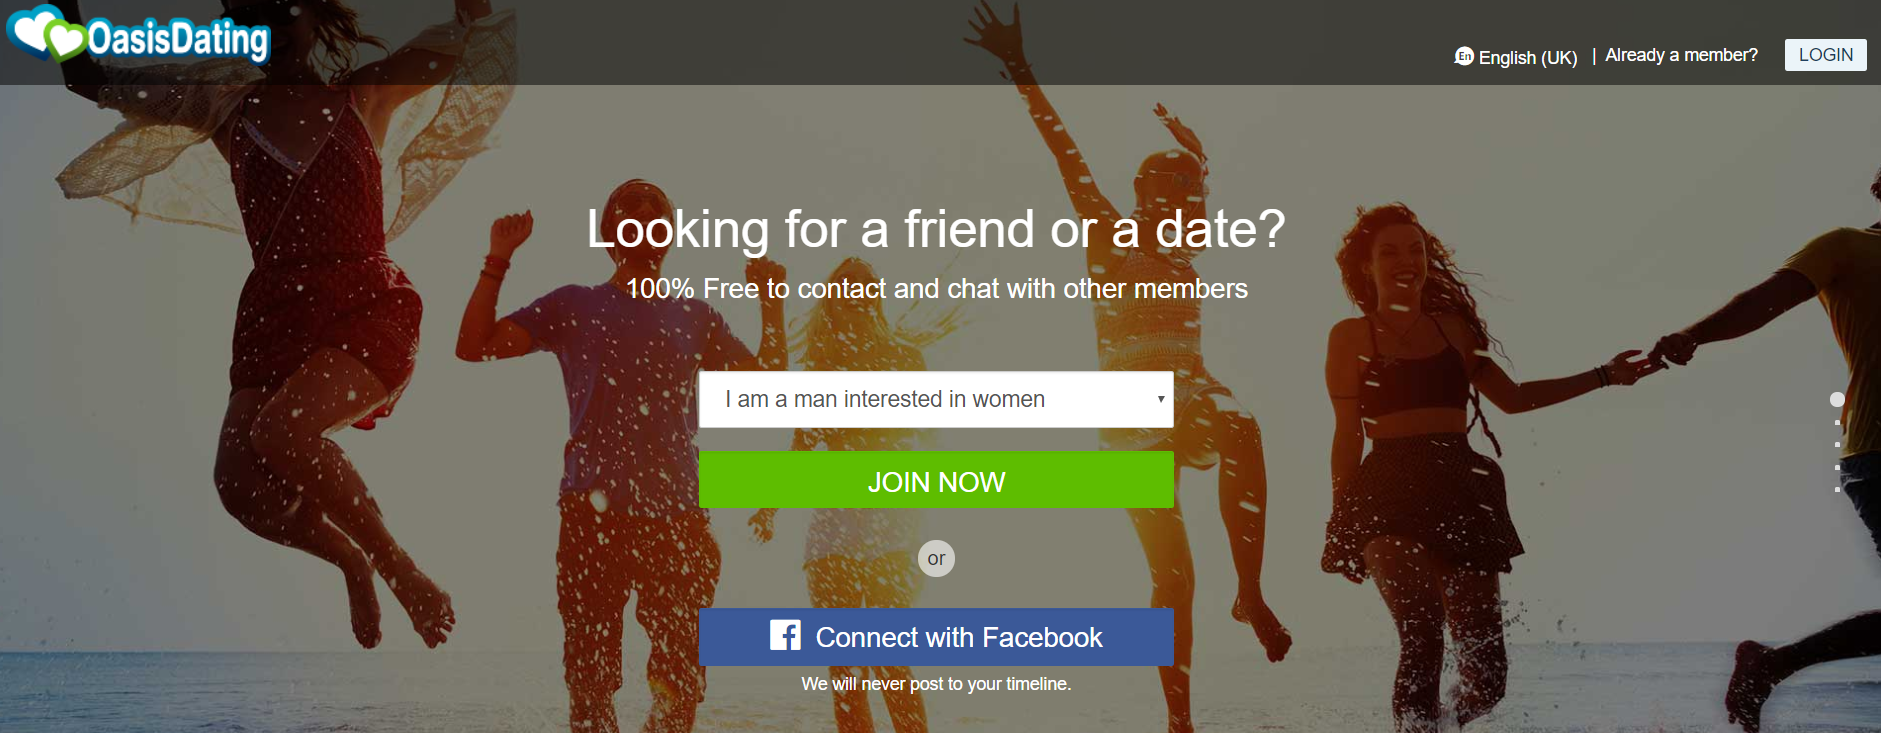 Oasis Active Online Dating Sign Up